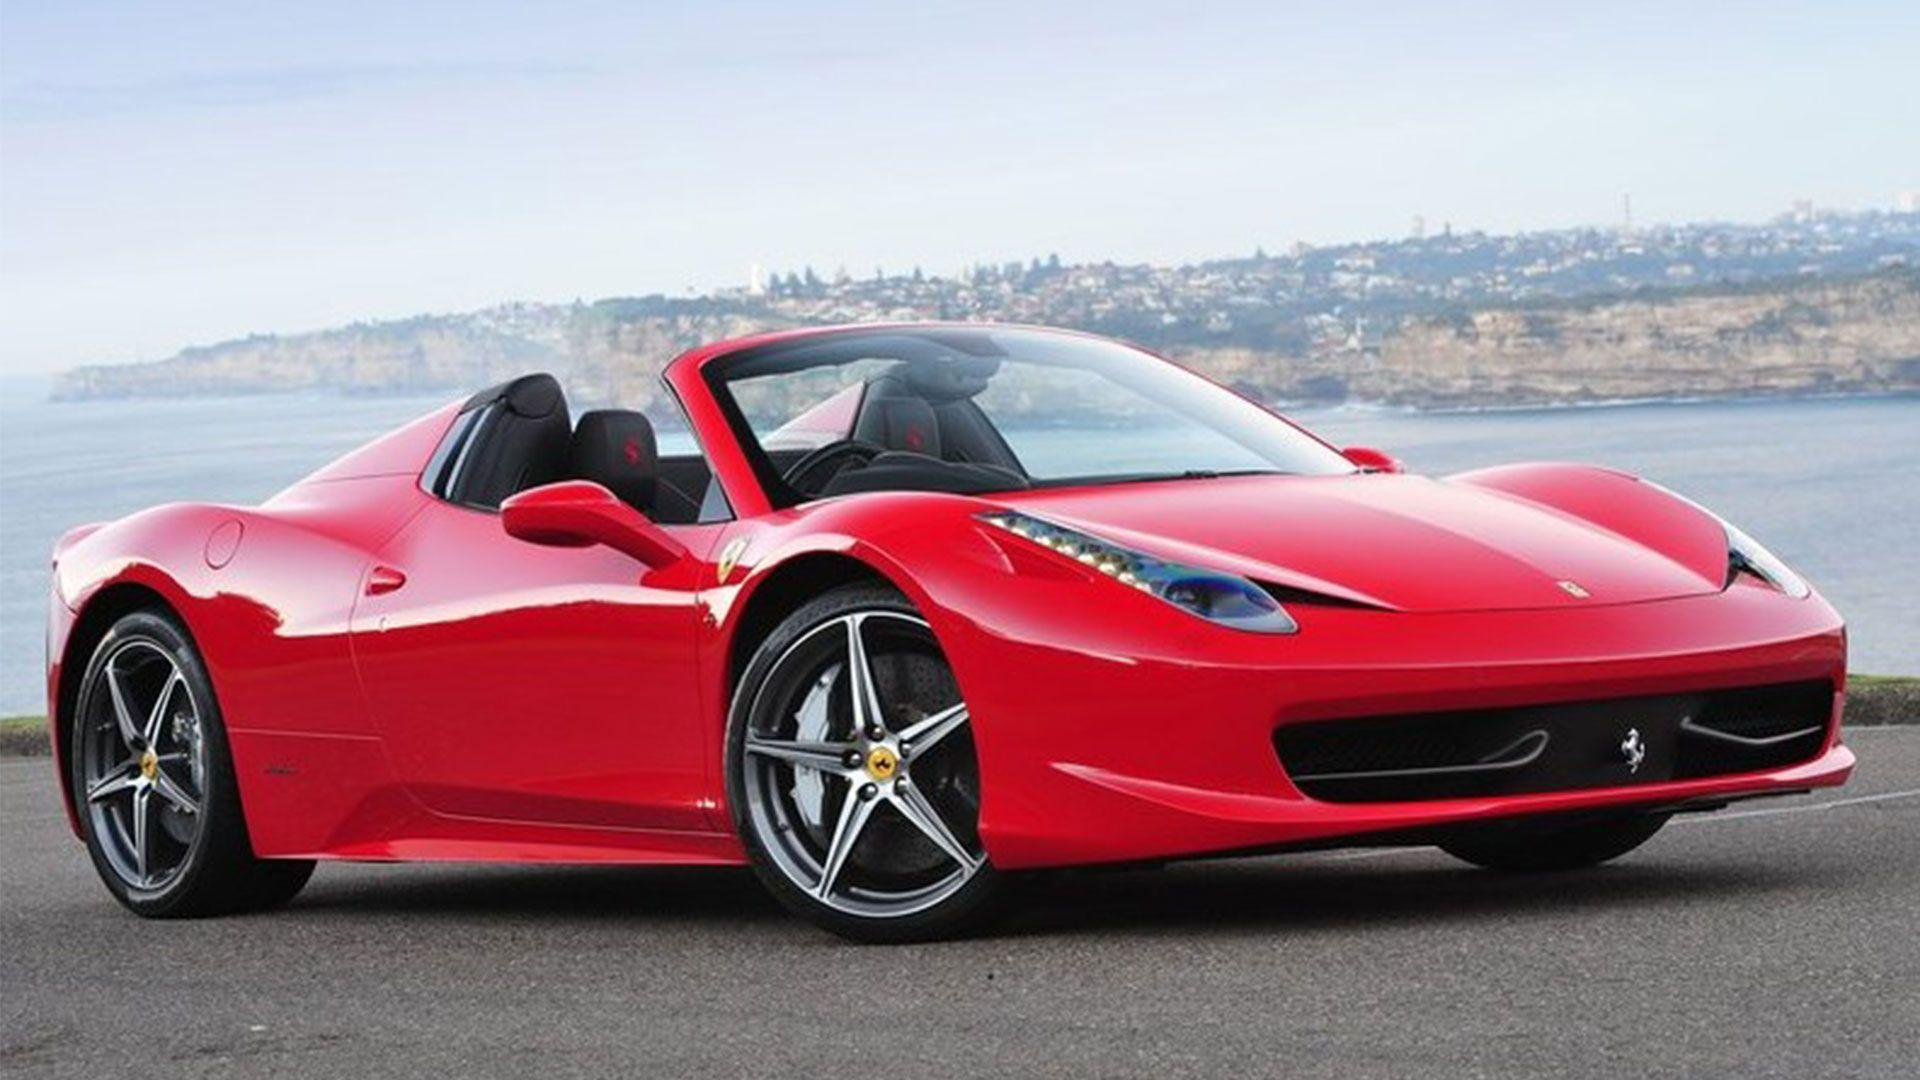 ferrari 458 spider wallpapers wallpaper cave. Black Bedroom Furniture Sets. Home Design Ideas